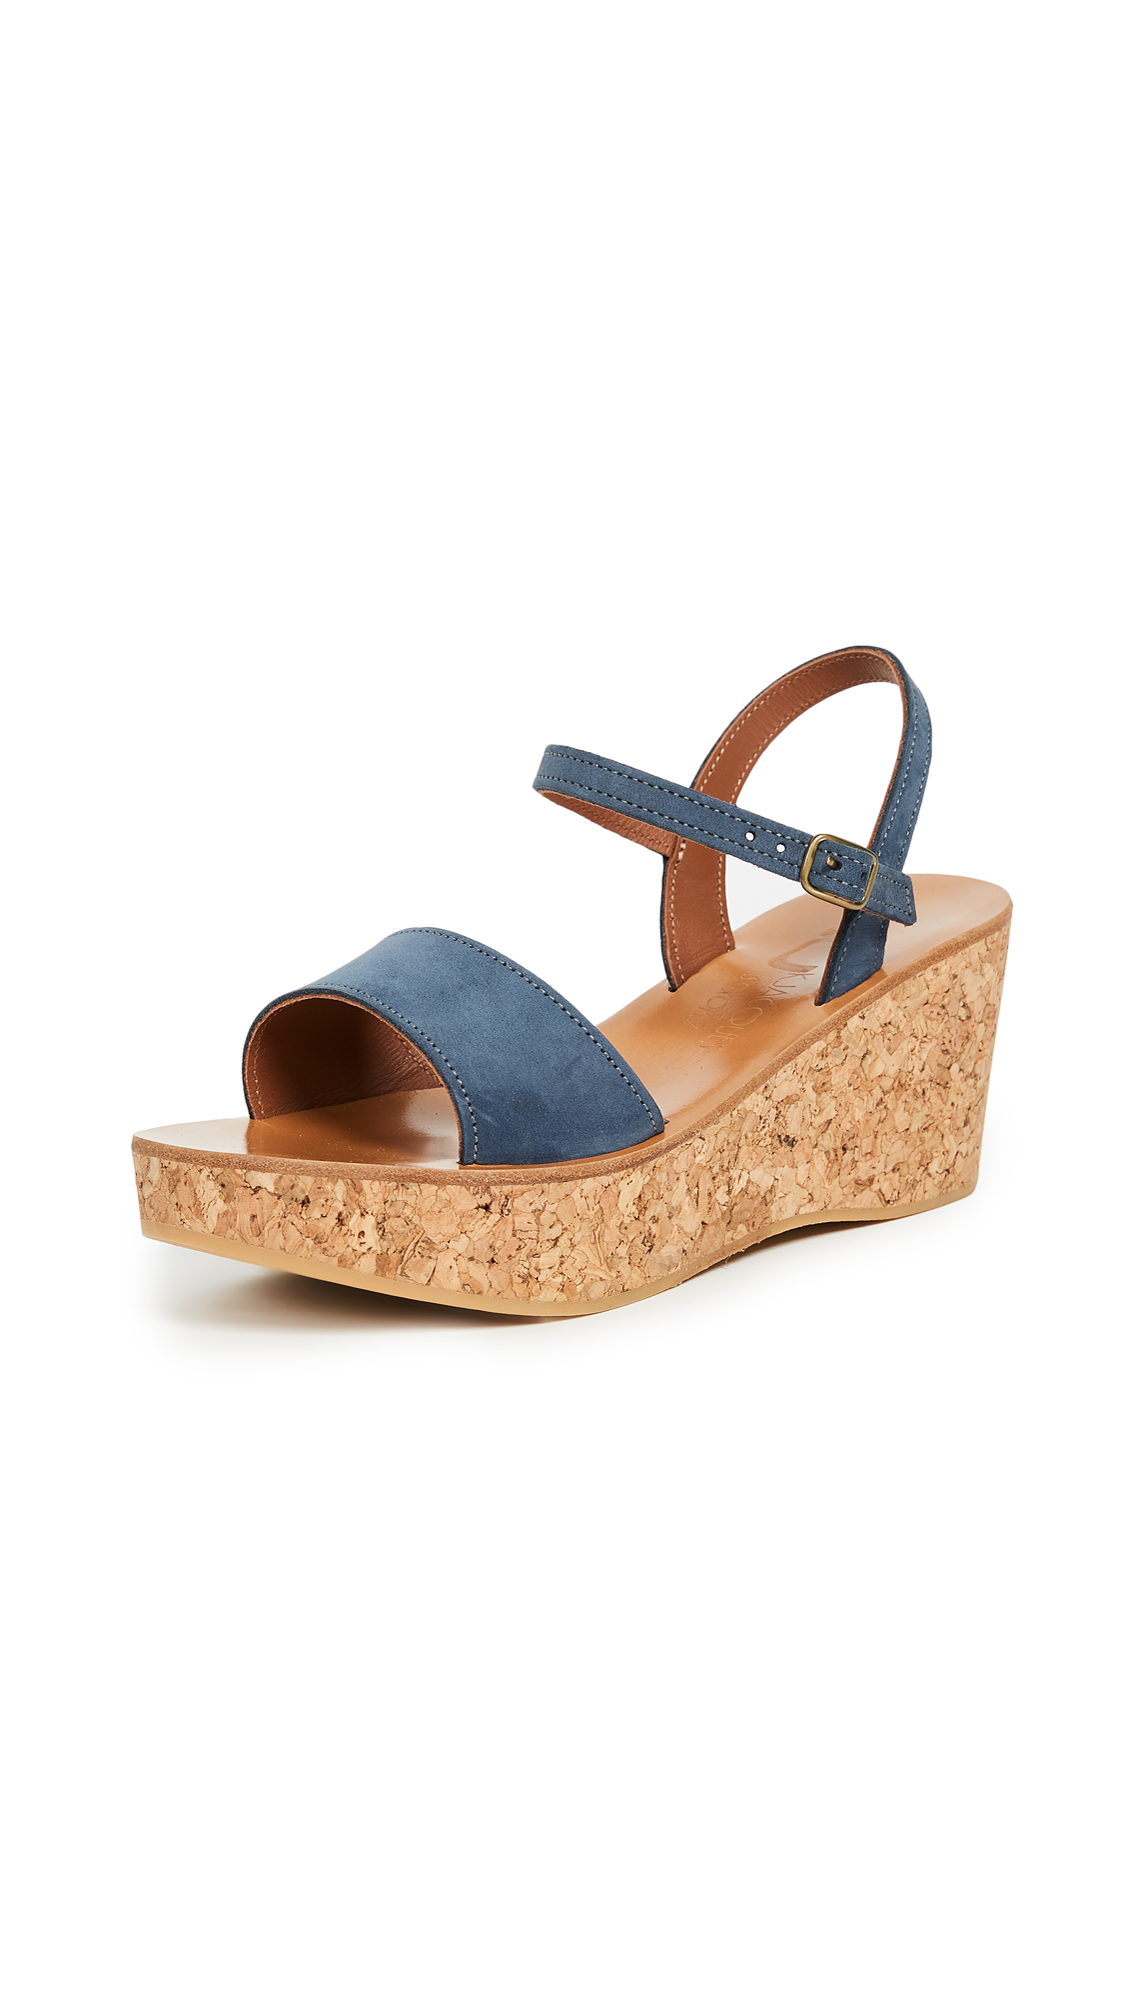 K. Jacques Josy Wedge Sandals - Nubuck Chine